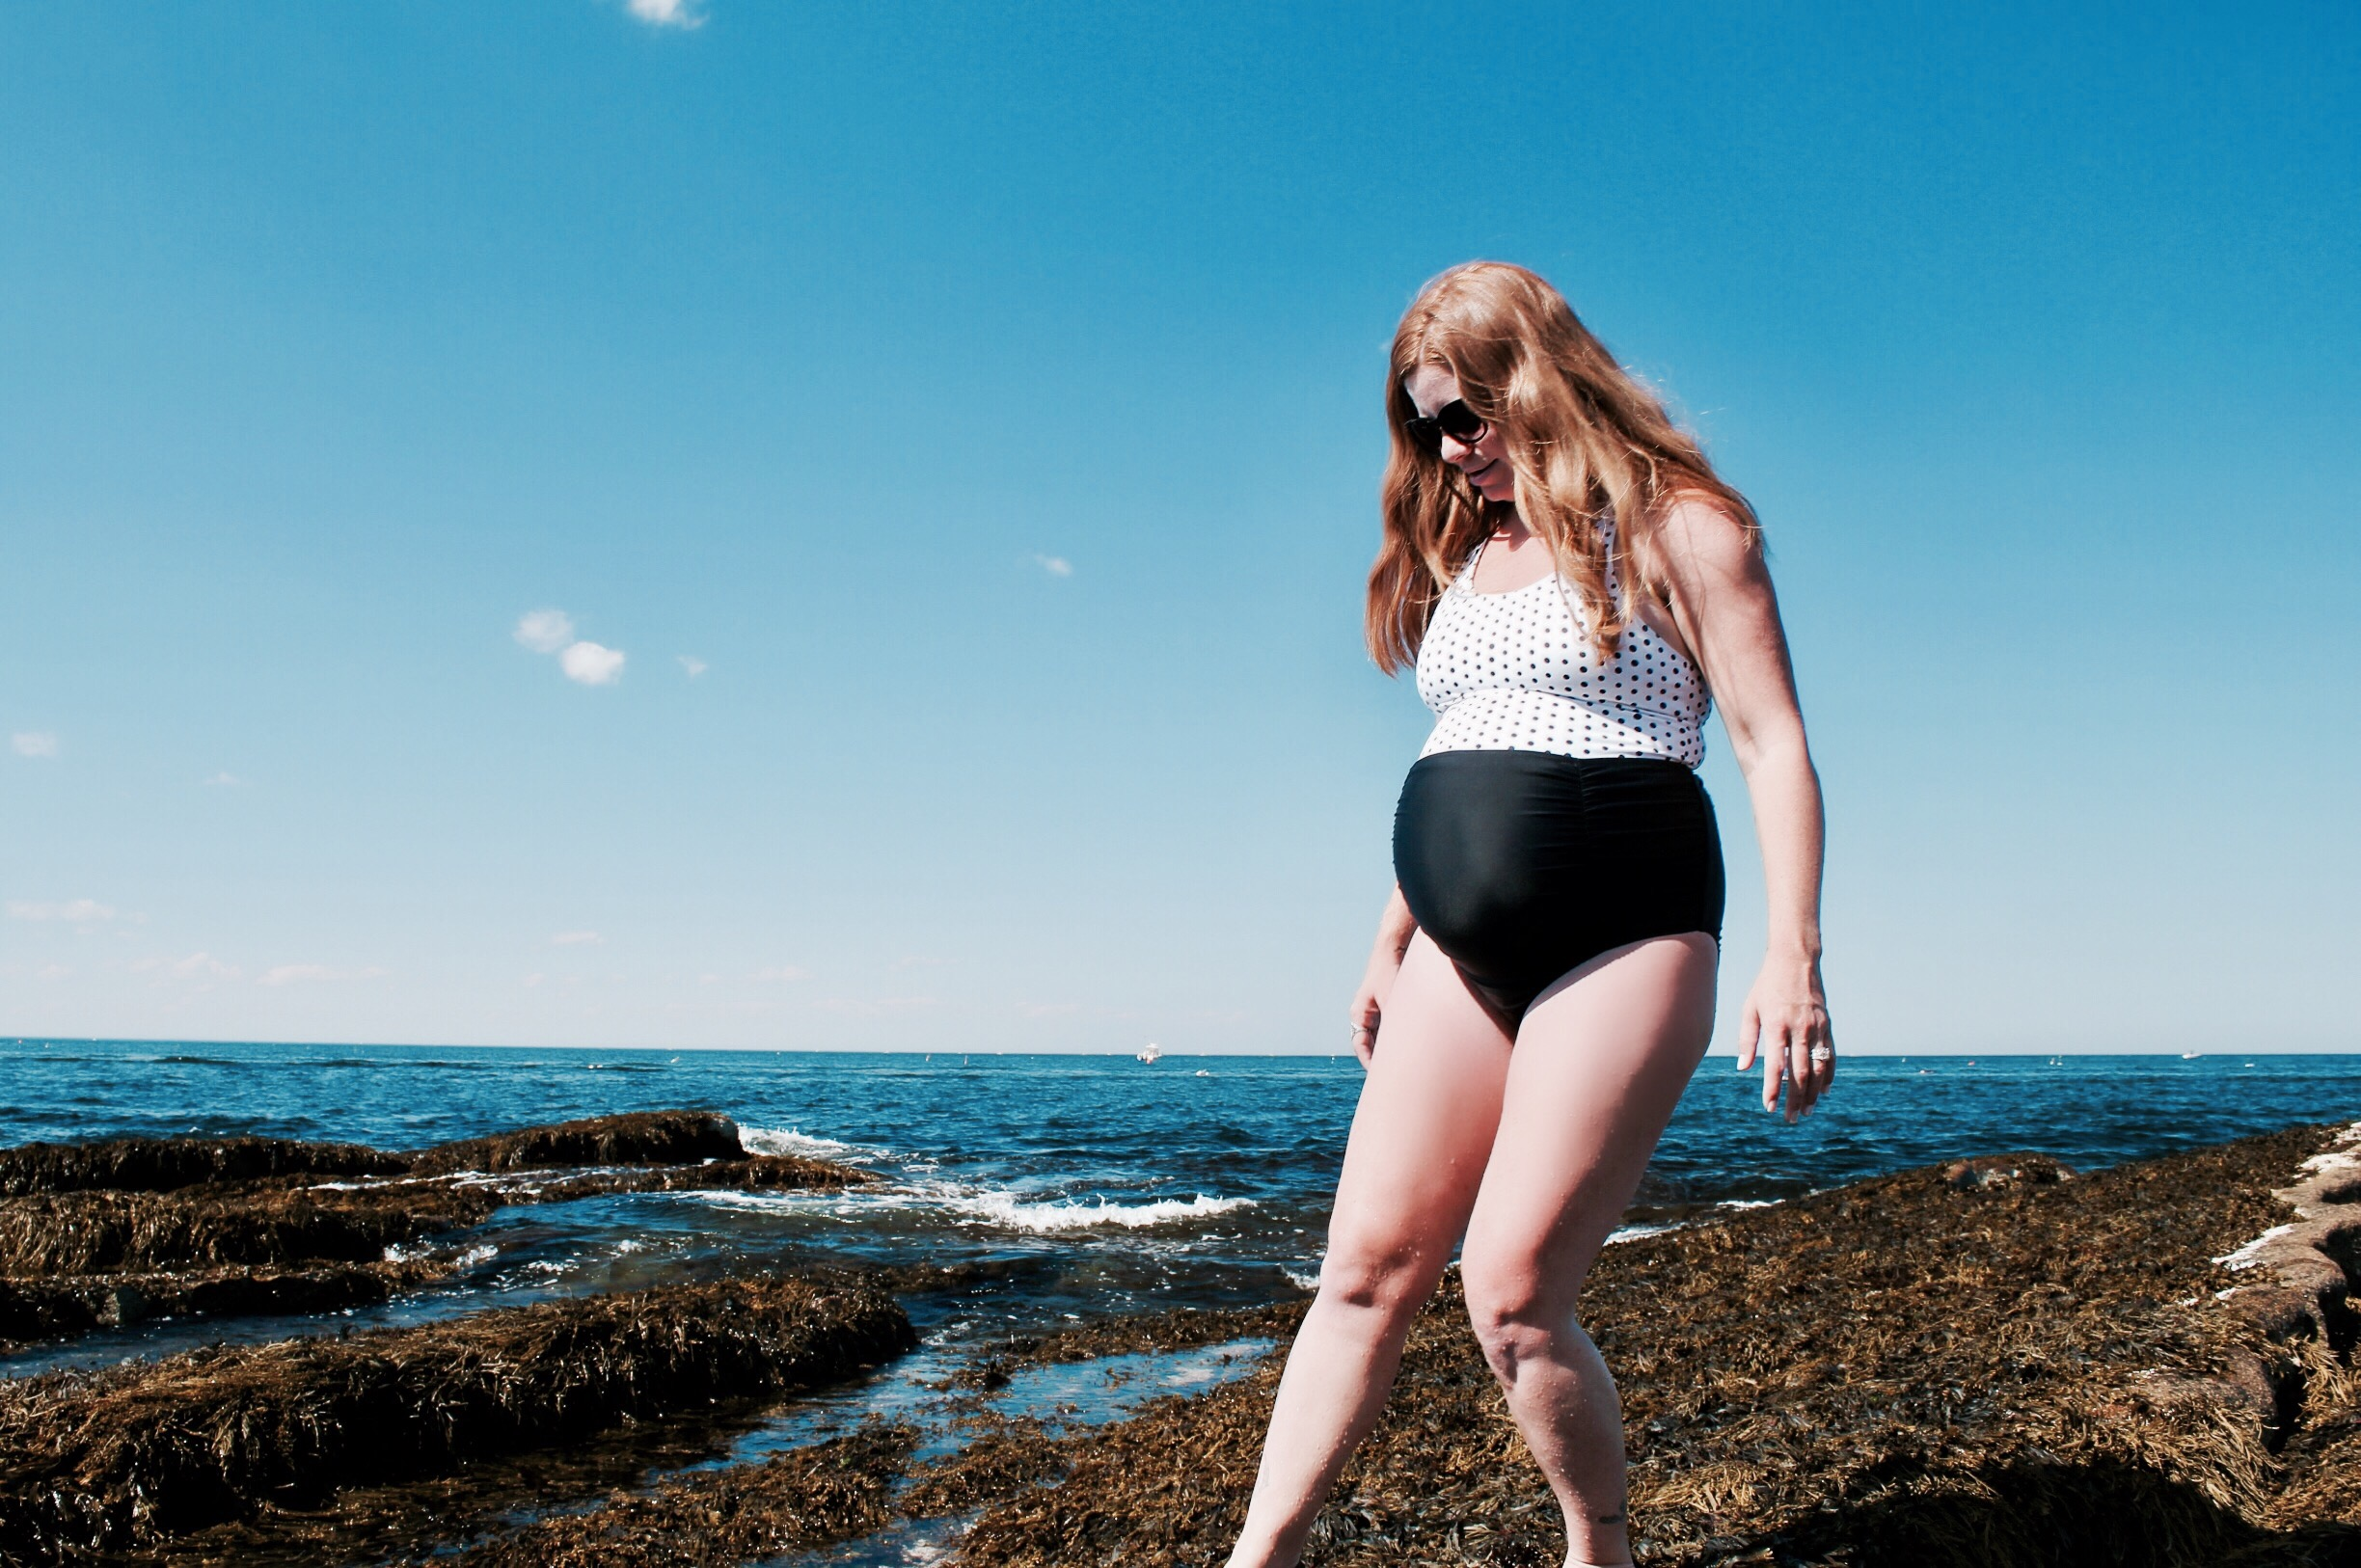 f140dacb31433 I also found that H&M's MAMA line has appealing swimwear but in my  experience the sizing has been a bit tricky. The suit I'd purchased at the  beginning of ...